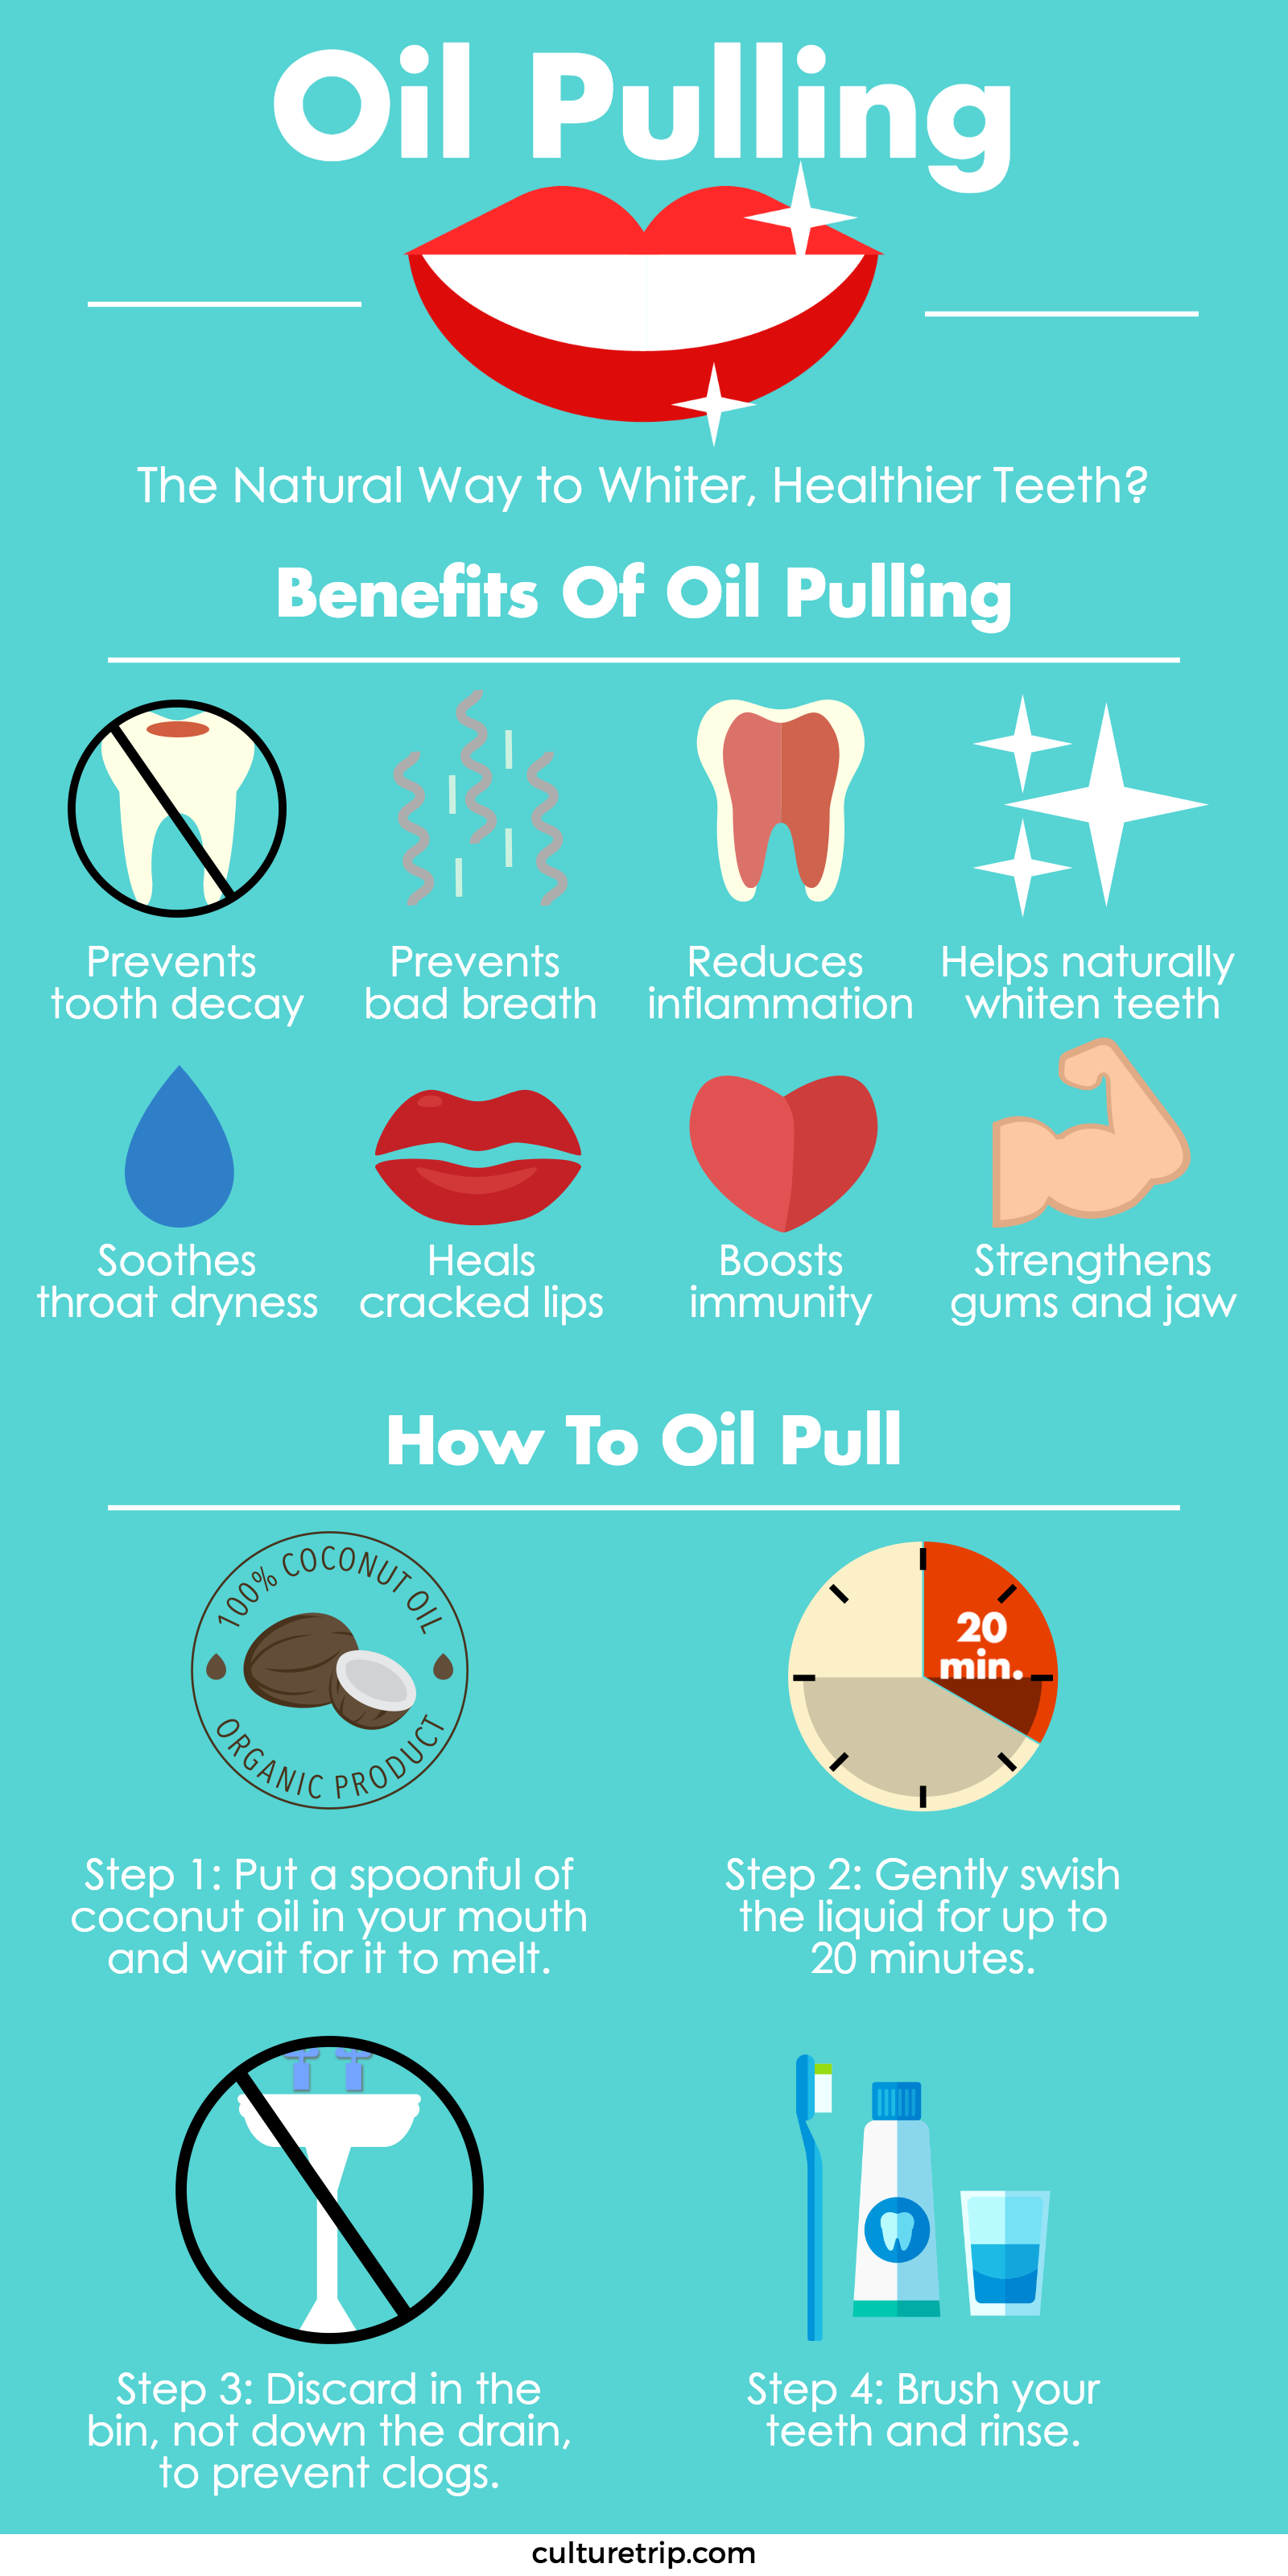 oil pulling draft 2